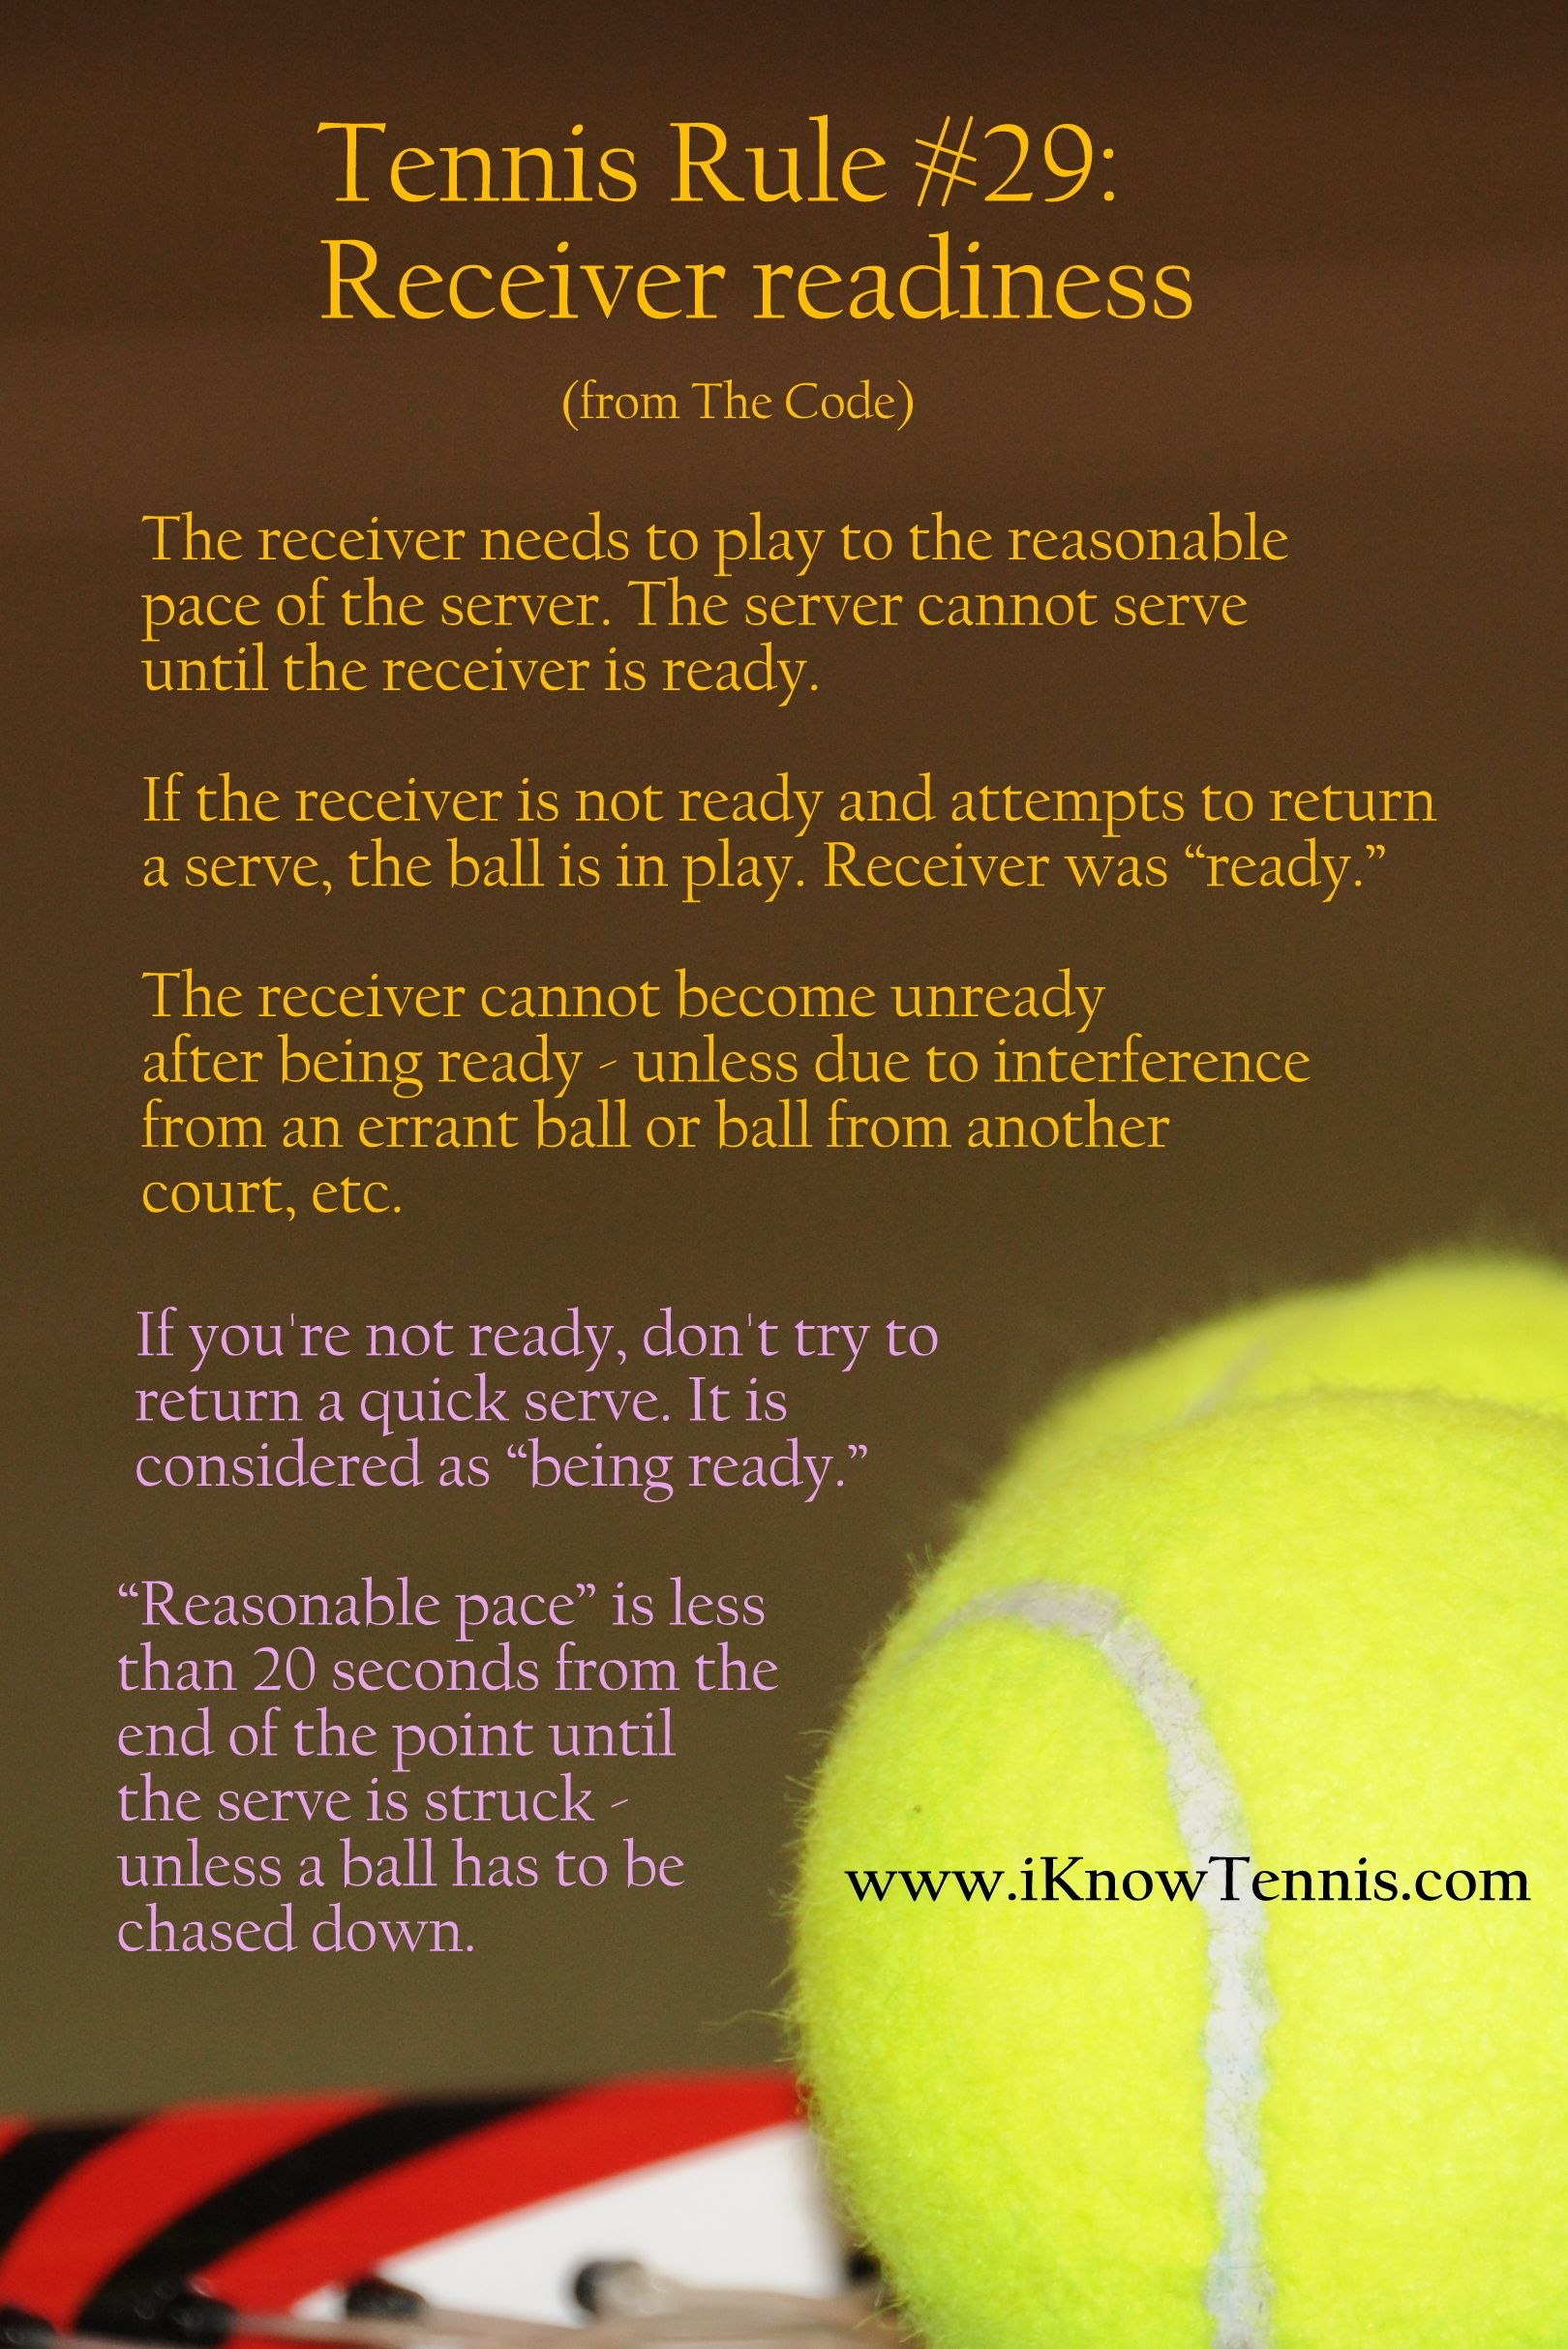 simple rules for tennis spectators from iknowtennis mobile app learn the rules of tennis from mobile app iknowtennis